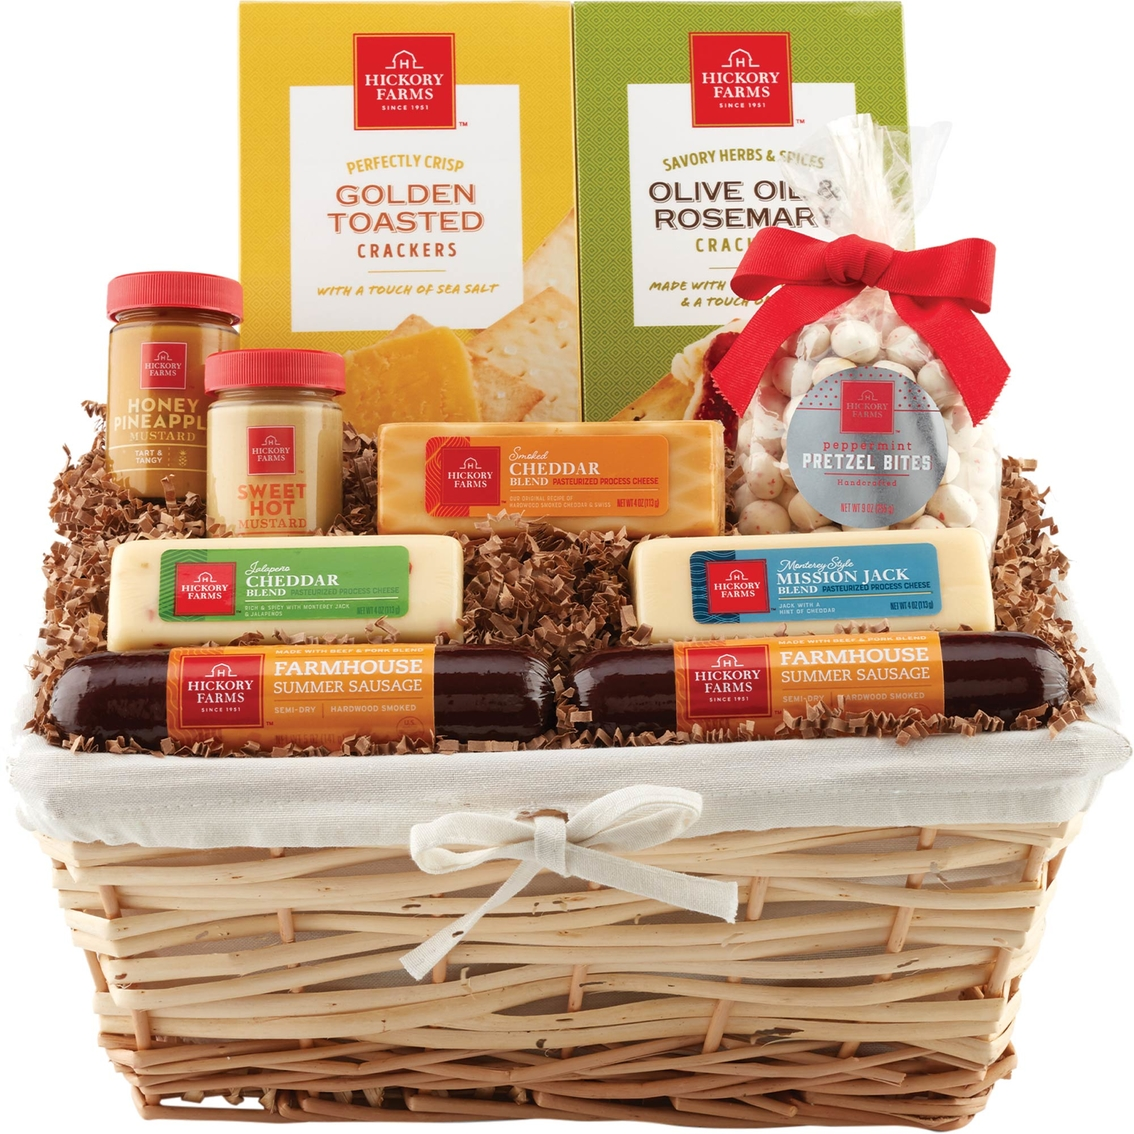 Hickory Farms Family Celebration Deluxe Gift Basket